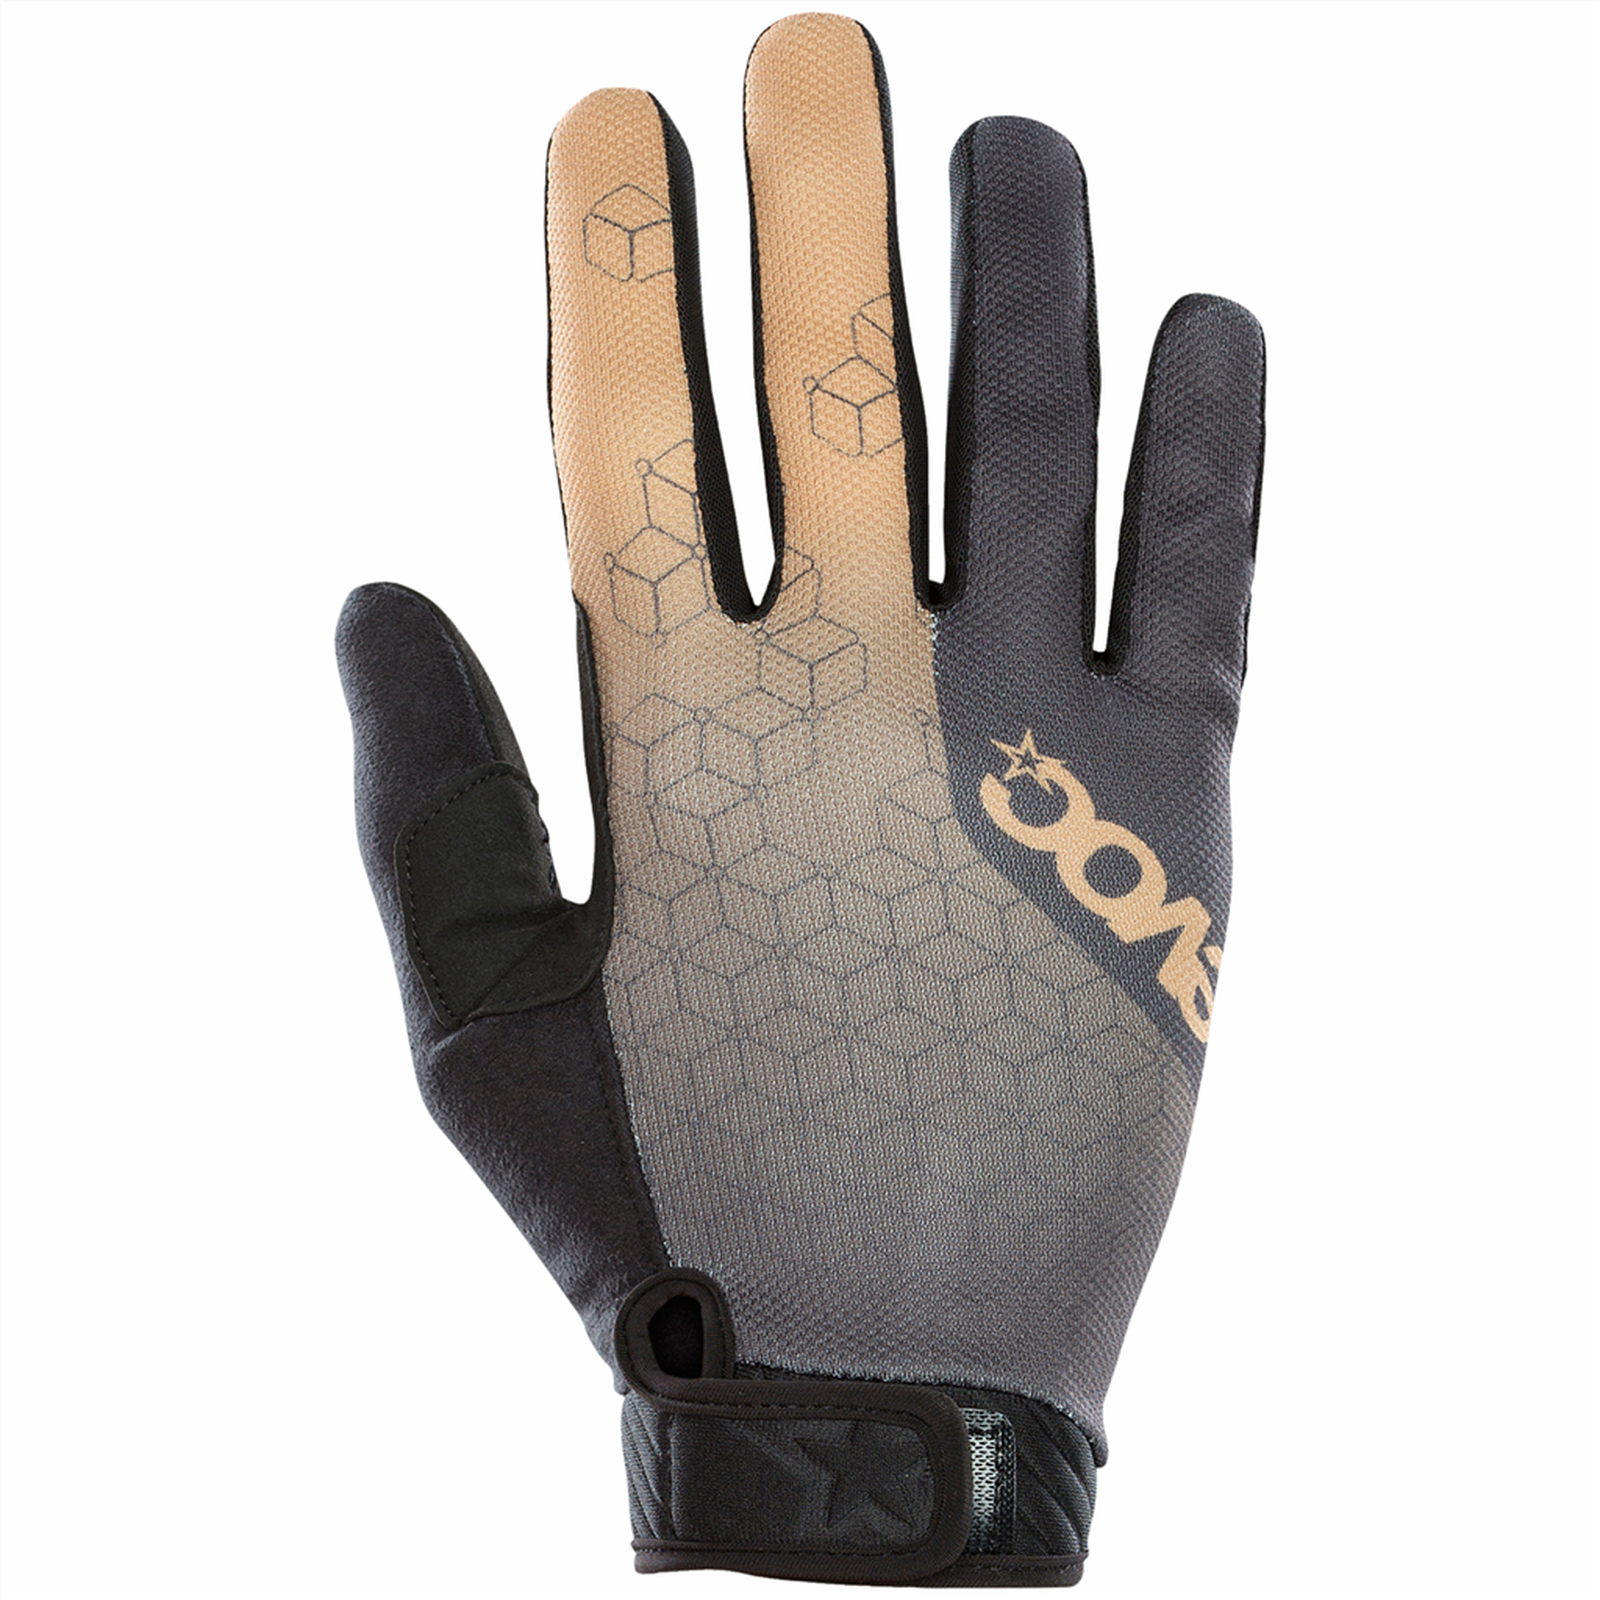 Enduro Touch Glove